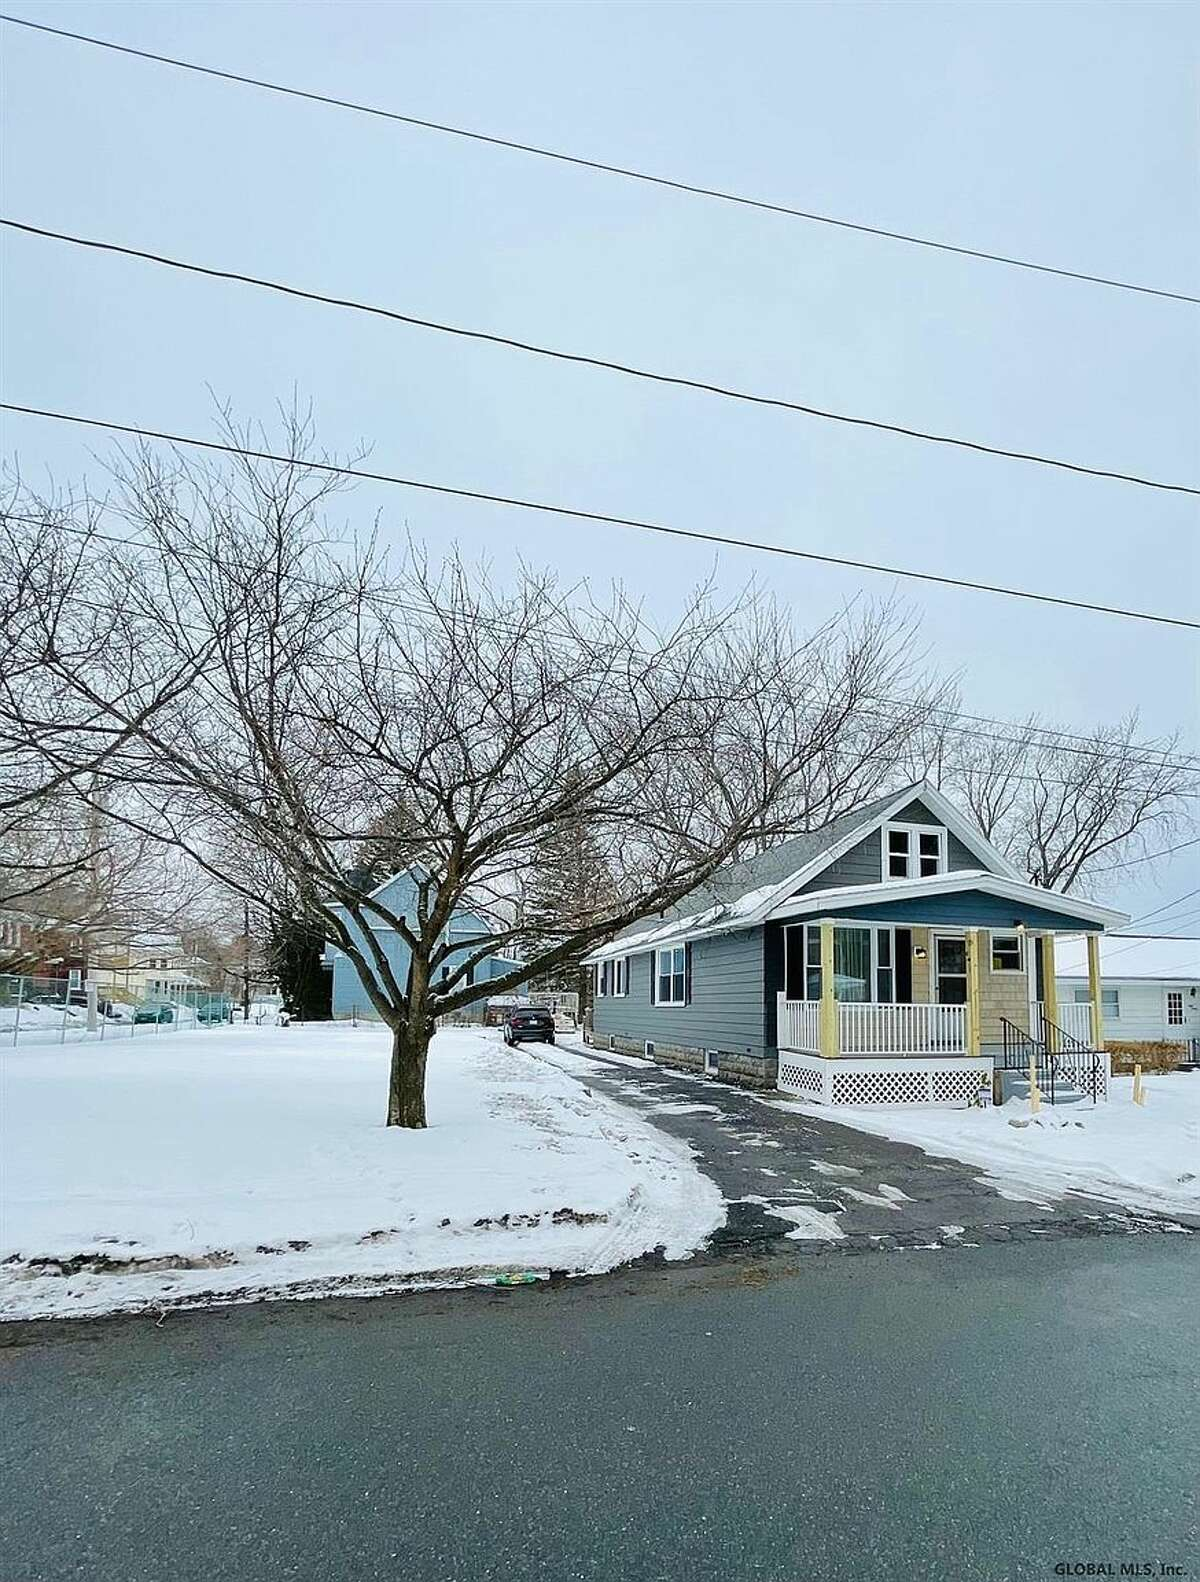 $164,900. 826 Gerling St., Schenectady, 12308. View listing.